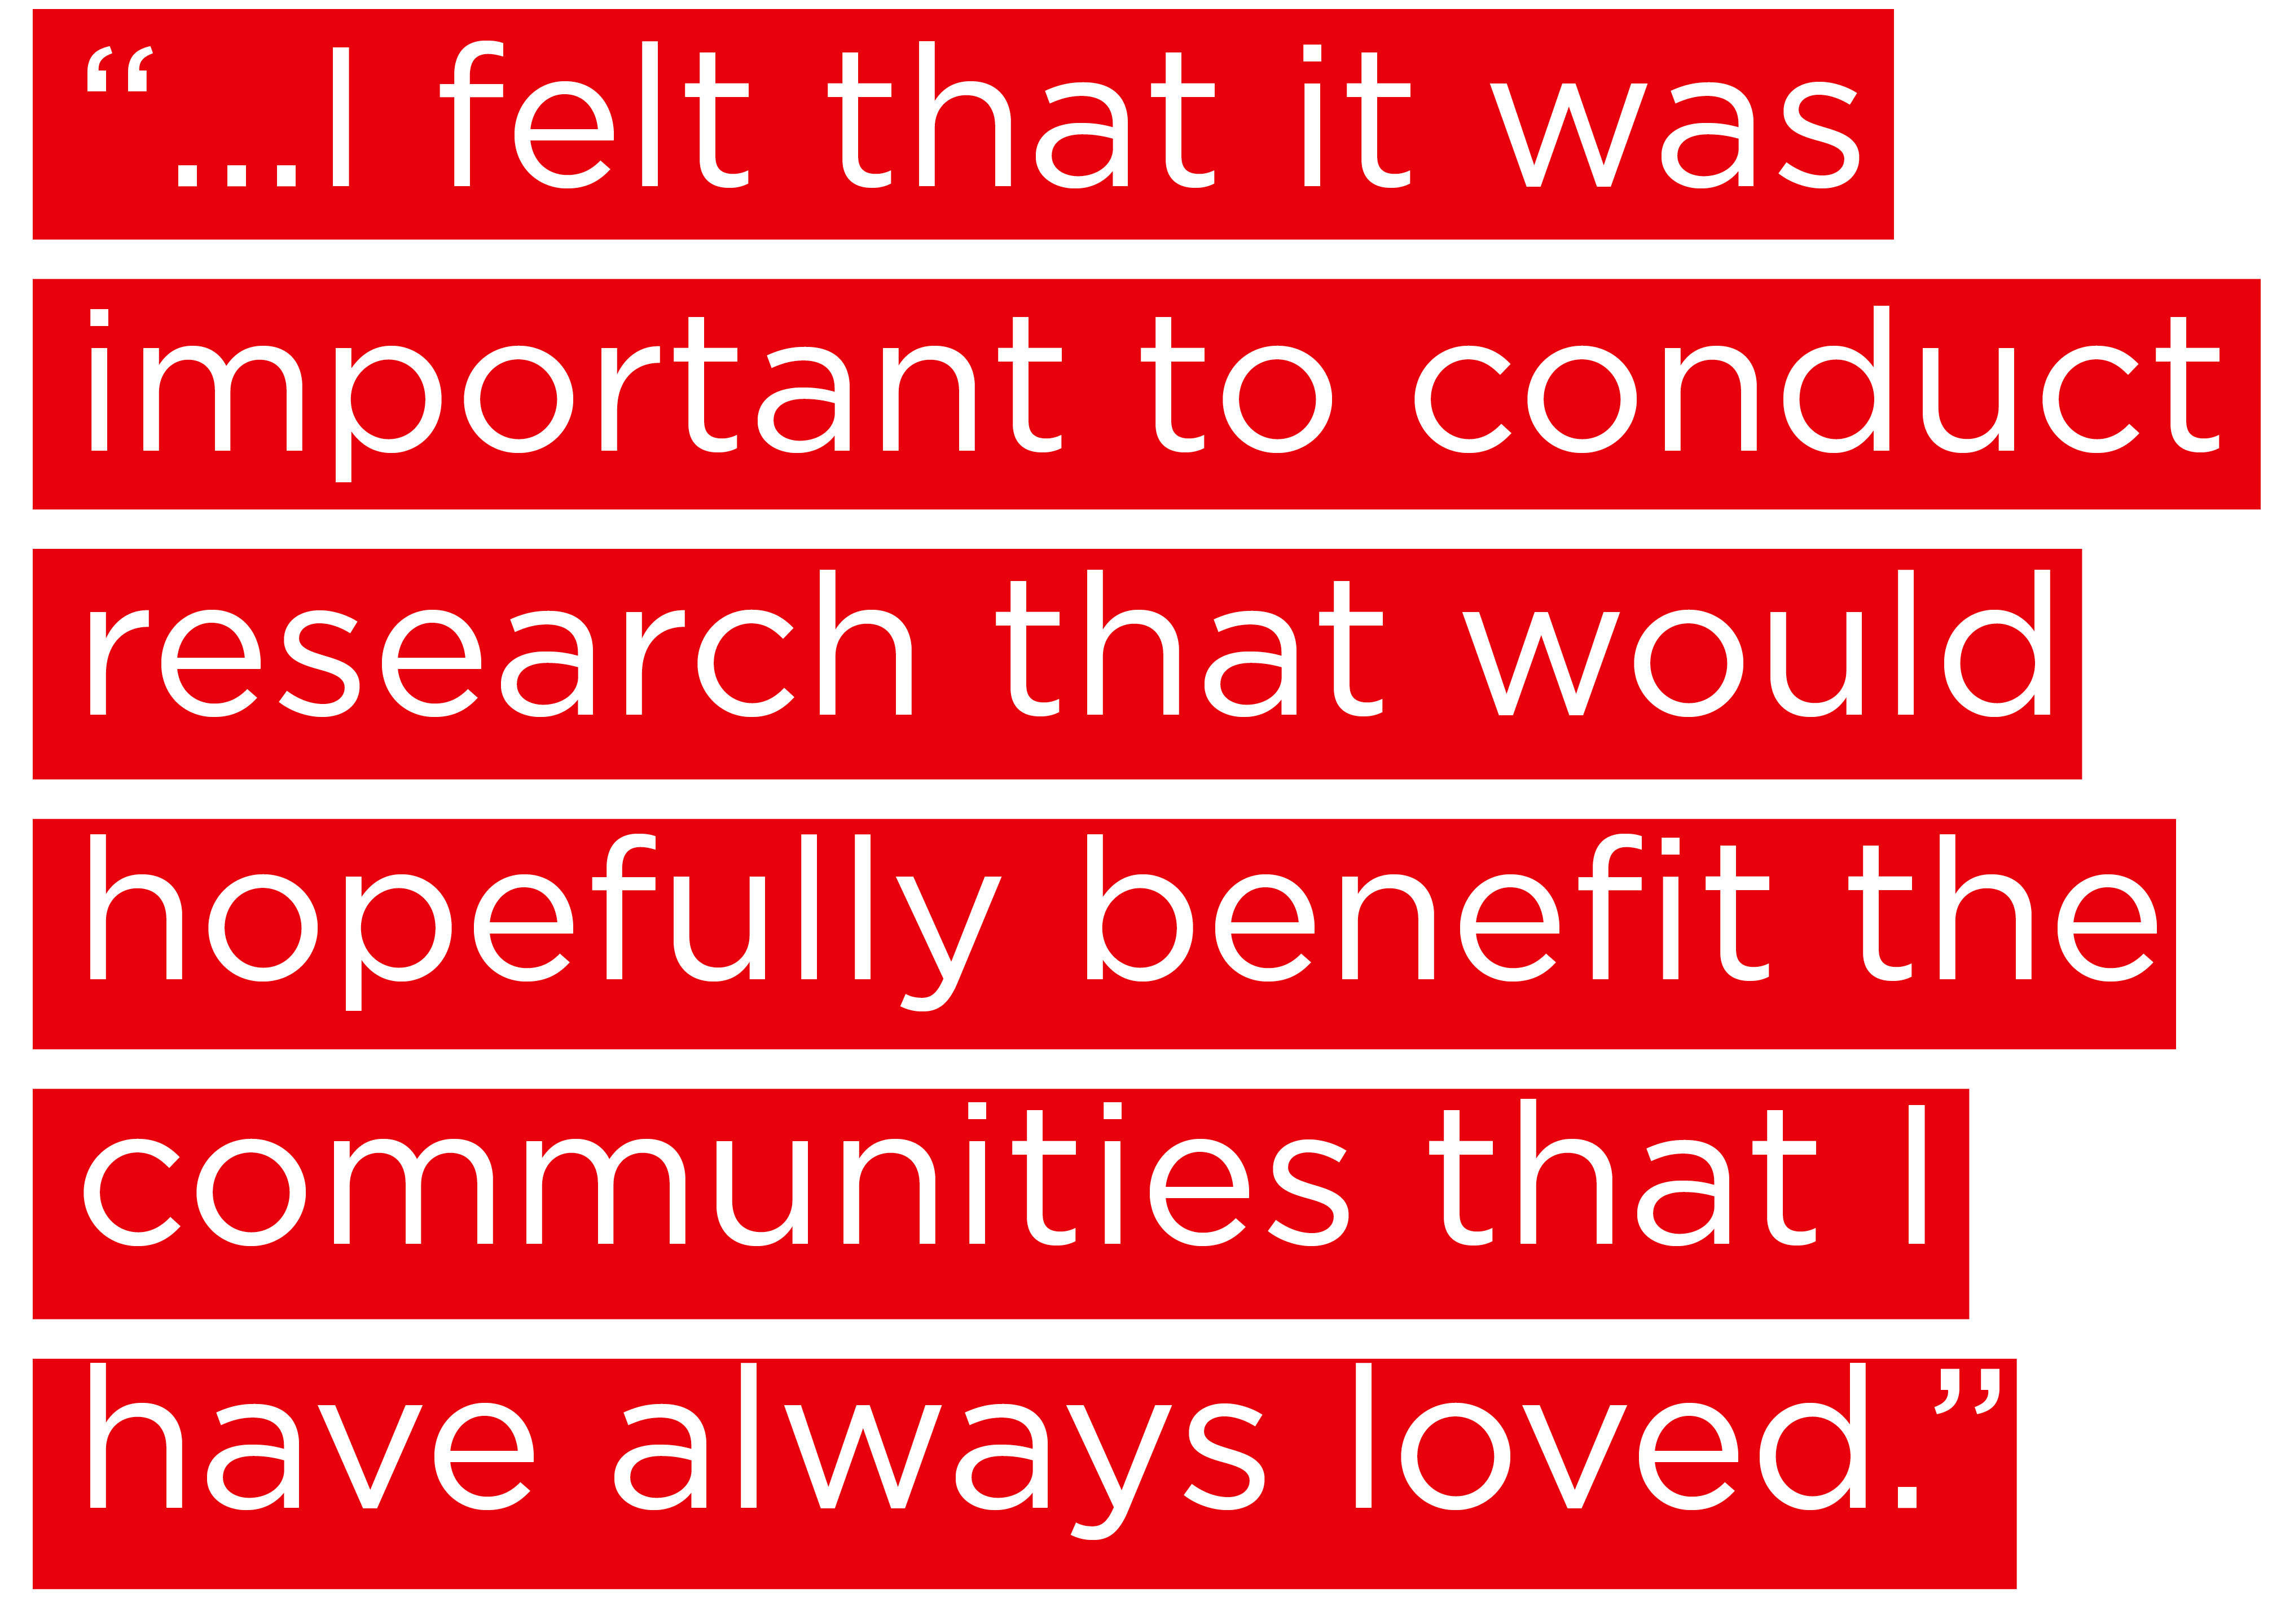 """""""...I felt that it was important to conduct research that would hopefully benefit the communities that I have always loved."""""""